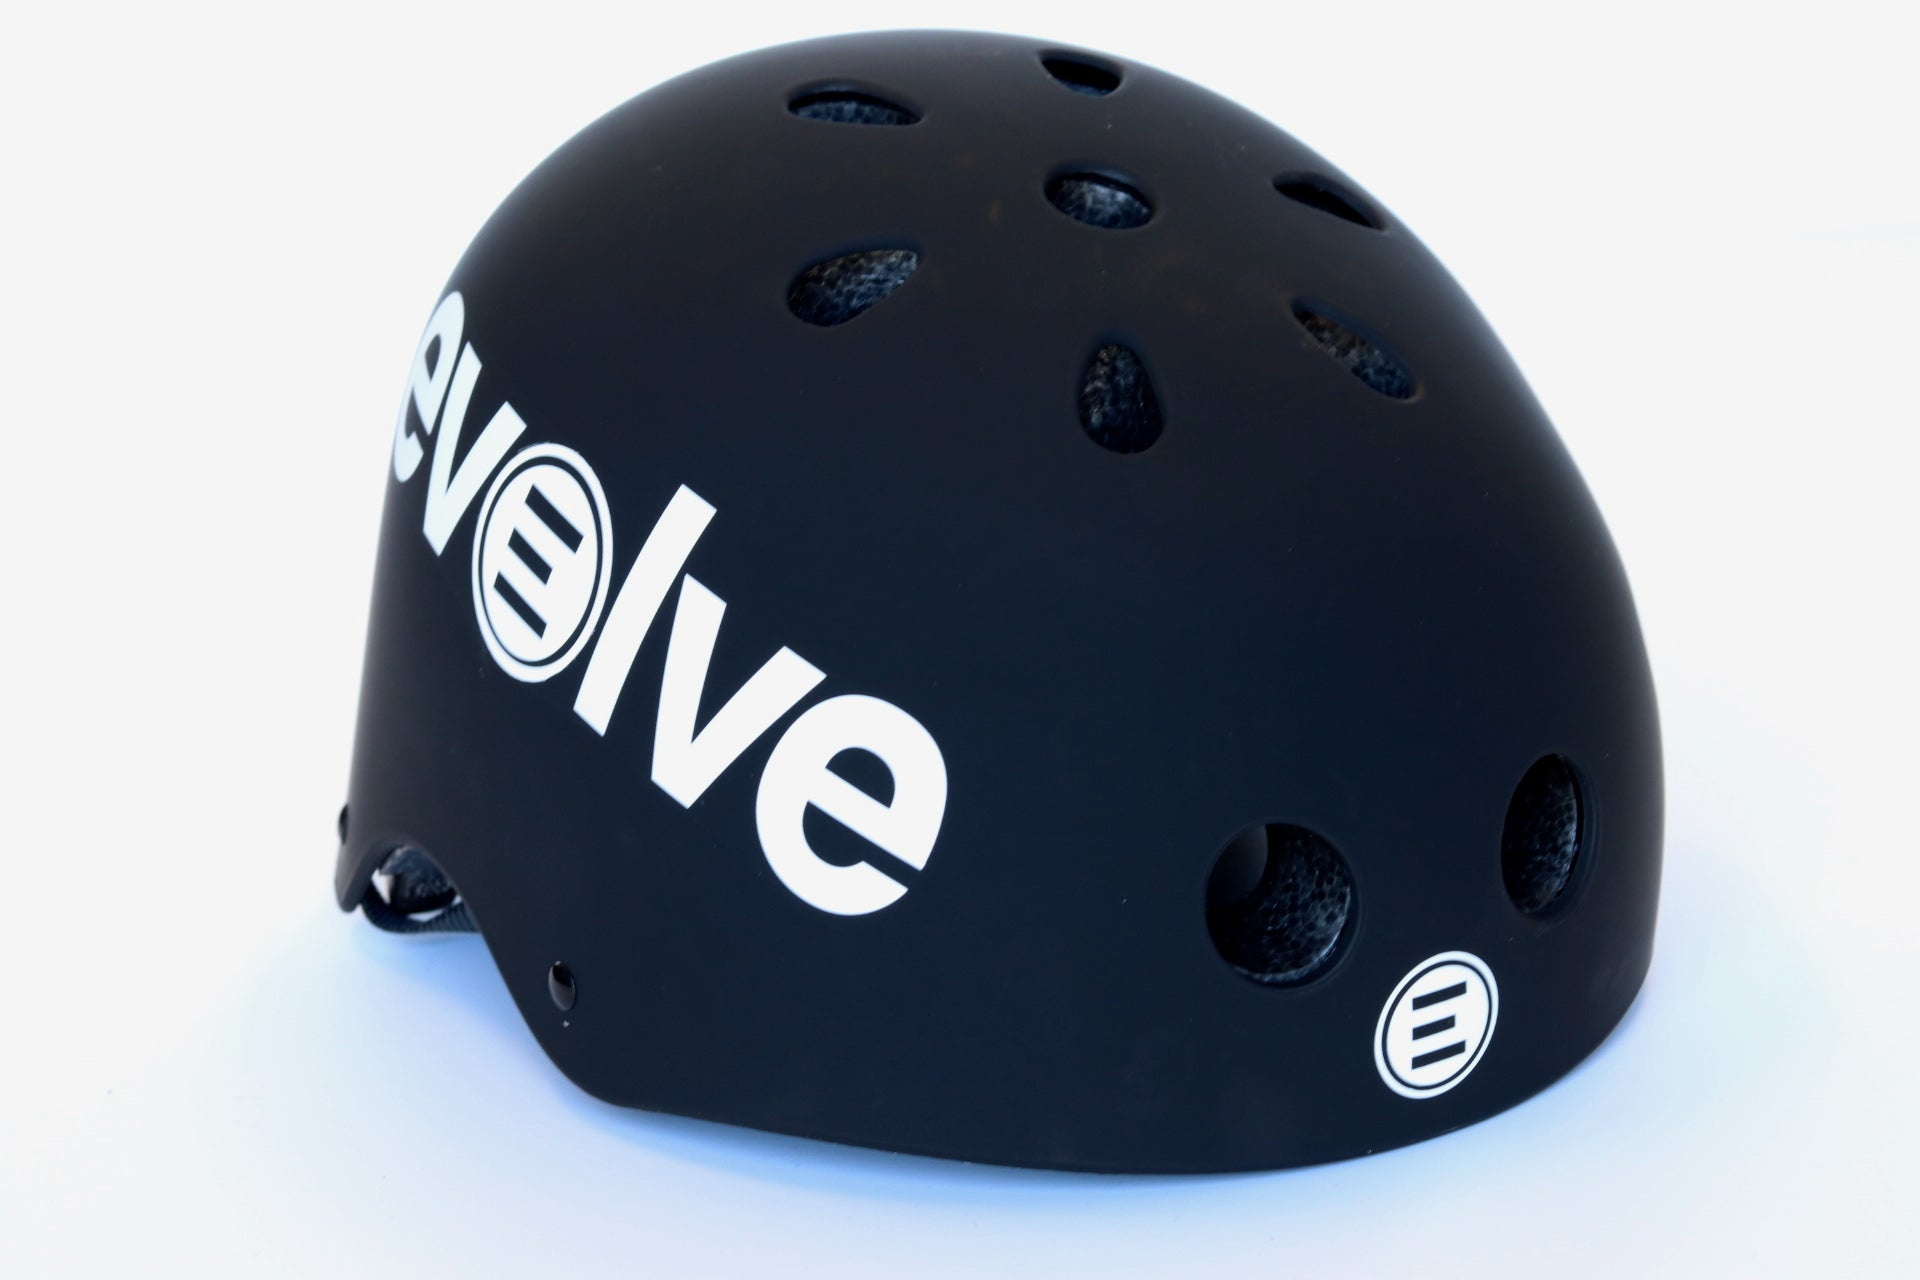 Casque de protection Evolve